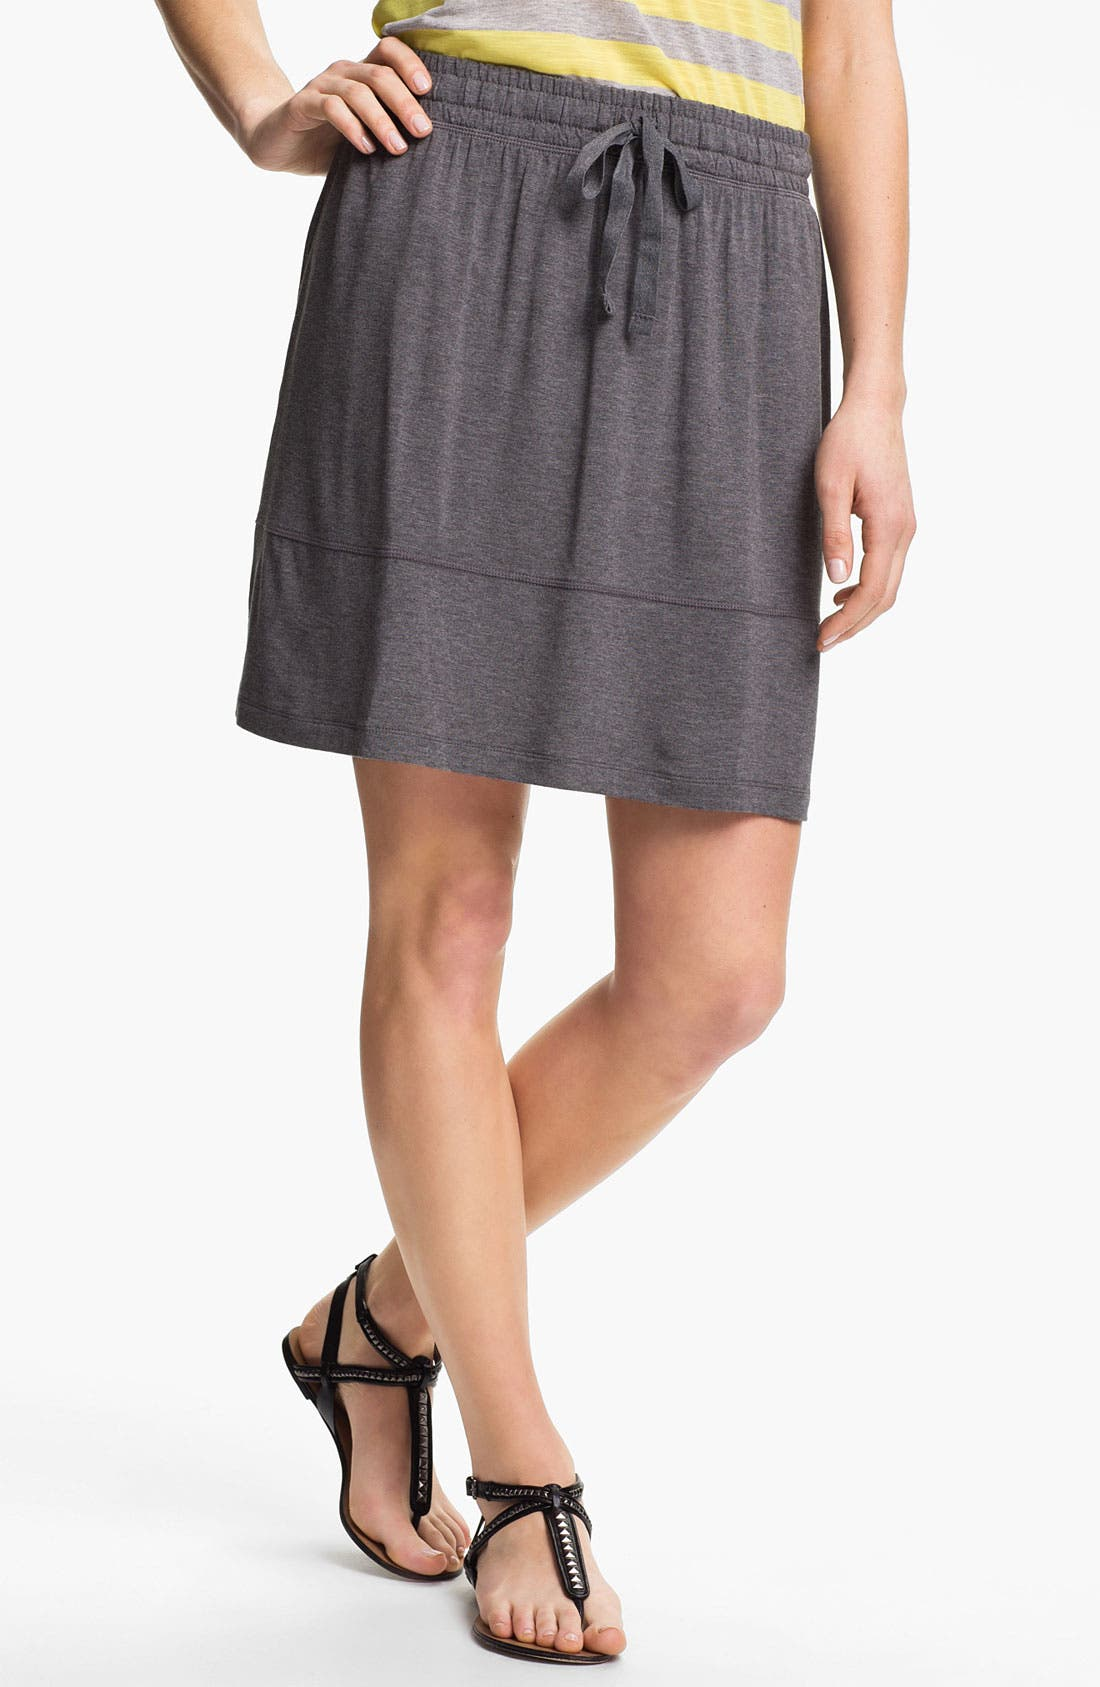 Main Image - Caslon Drawstring Short Skirt